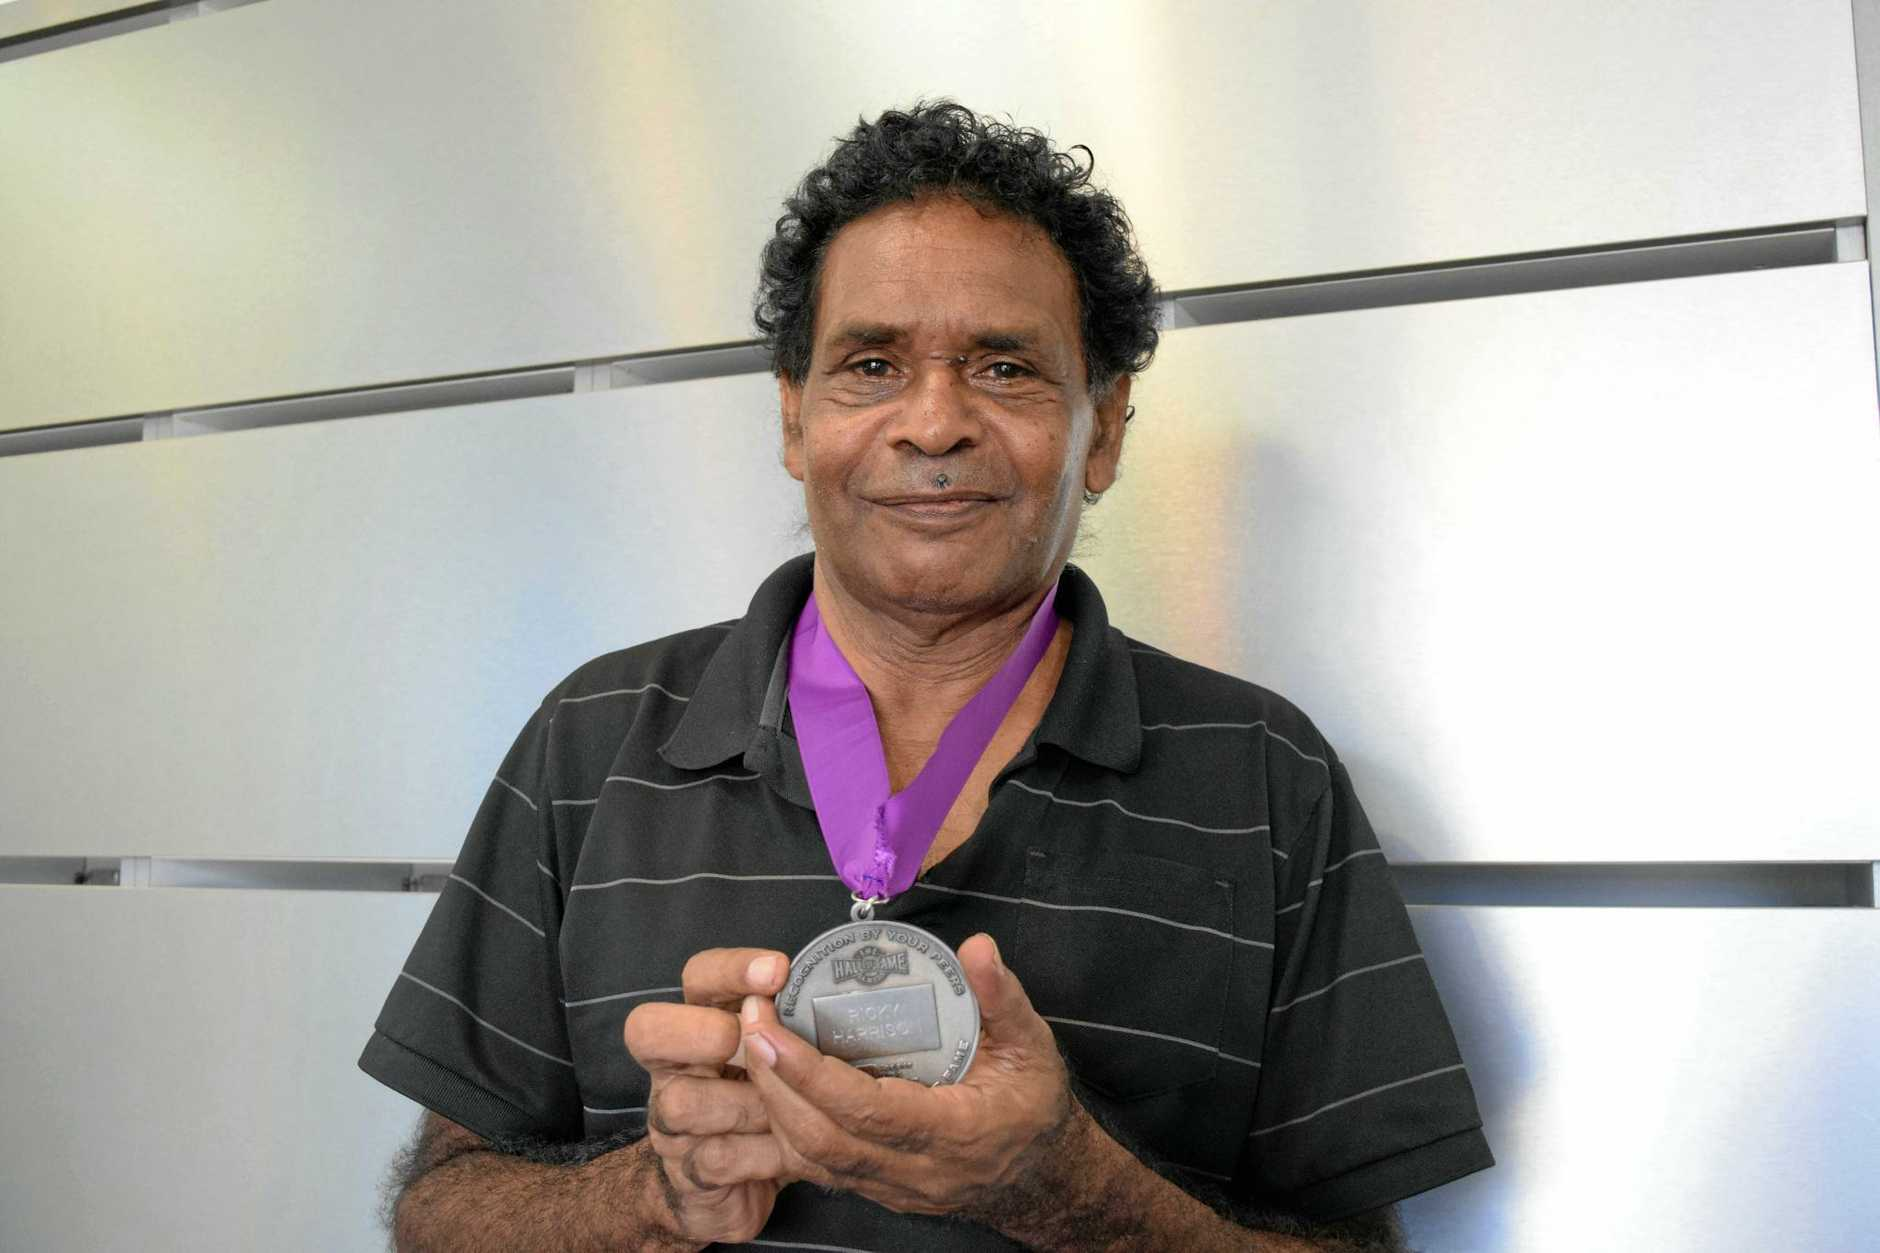 MUSIC LEGEND: Ricky Harrison of No Fixed Address with his South Australian Music Hall of Fame medal. The band is reforming and set to tour Australia this year.